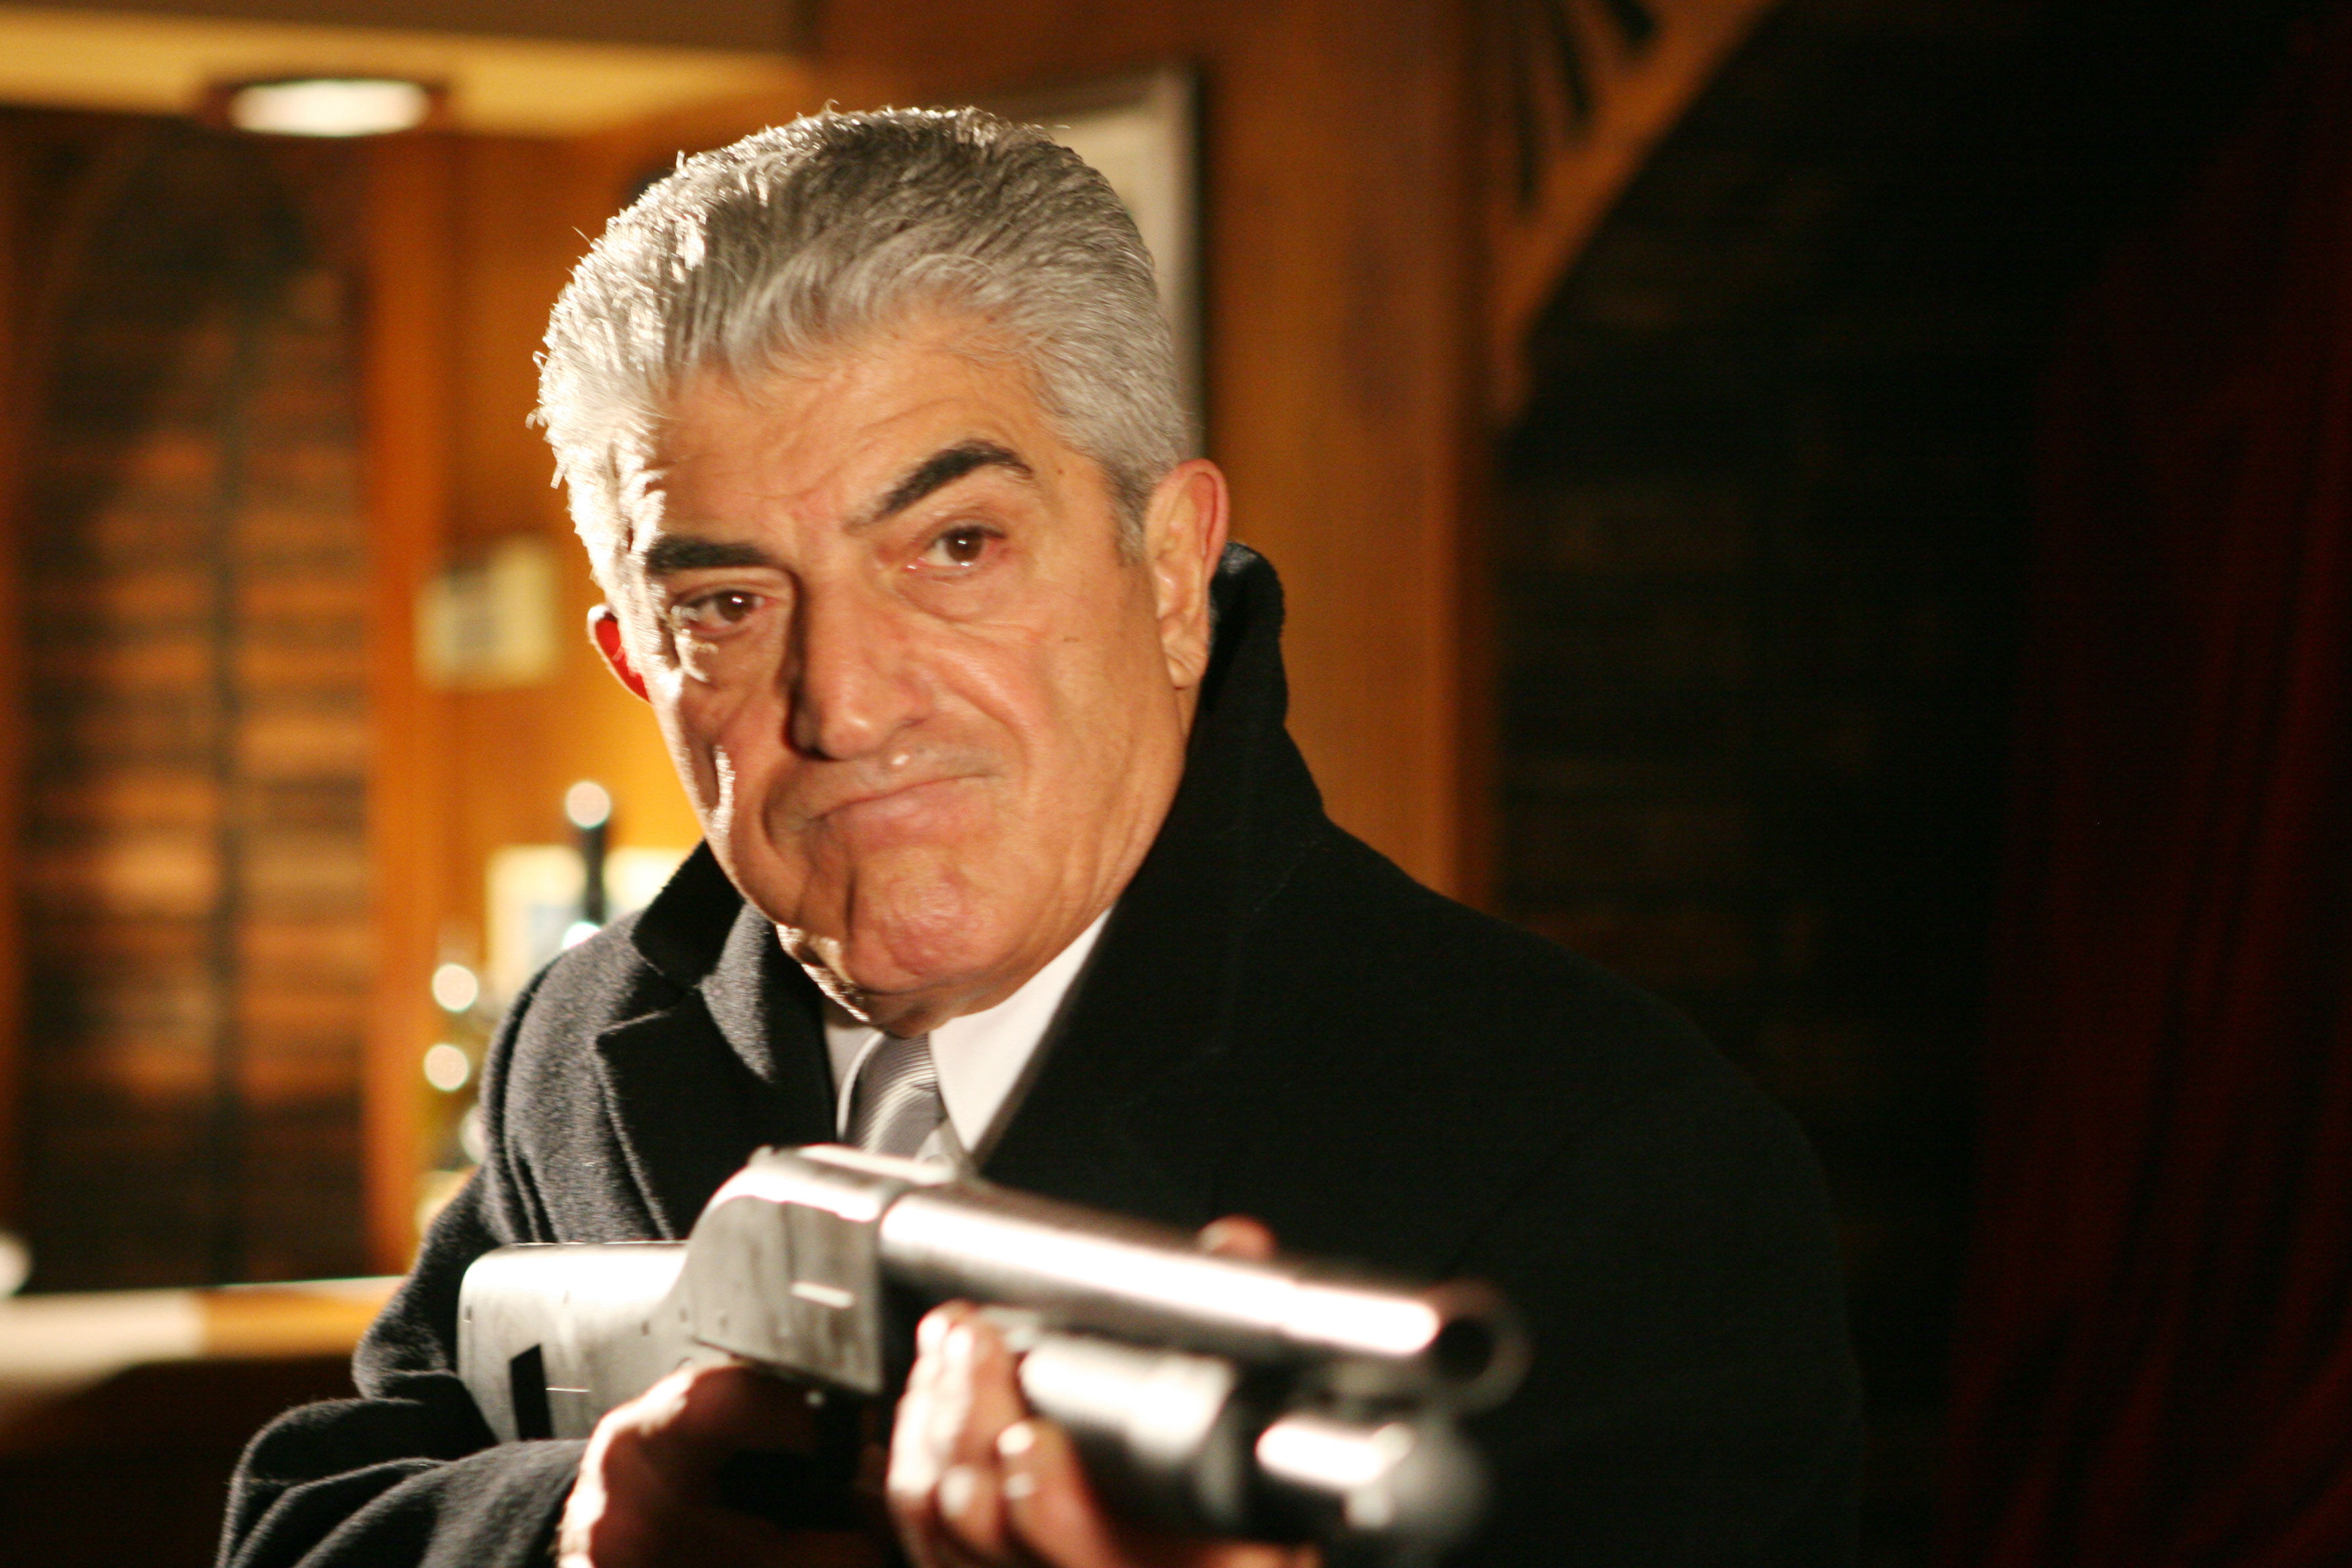 frank vincent tributefrank vincent zappa, frank vincent gta, frank vincent age, frank vincent cause of death, frank vincent wiki, frank vincent quotes, frank vincent sopranos, frank vincent commercial, frank vincent goodfellas, frank vincent funeral, frank vincent tribute, frank vincent, frank vincent imdb, frank vincent casino, frank vincent dumond, frank vincent book, frank vincent height, frank vincent joe pesci, frank vincent raging bull, frank vincent do the right thing